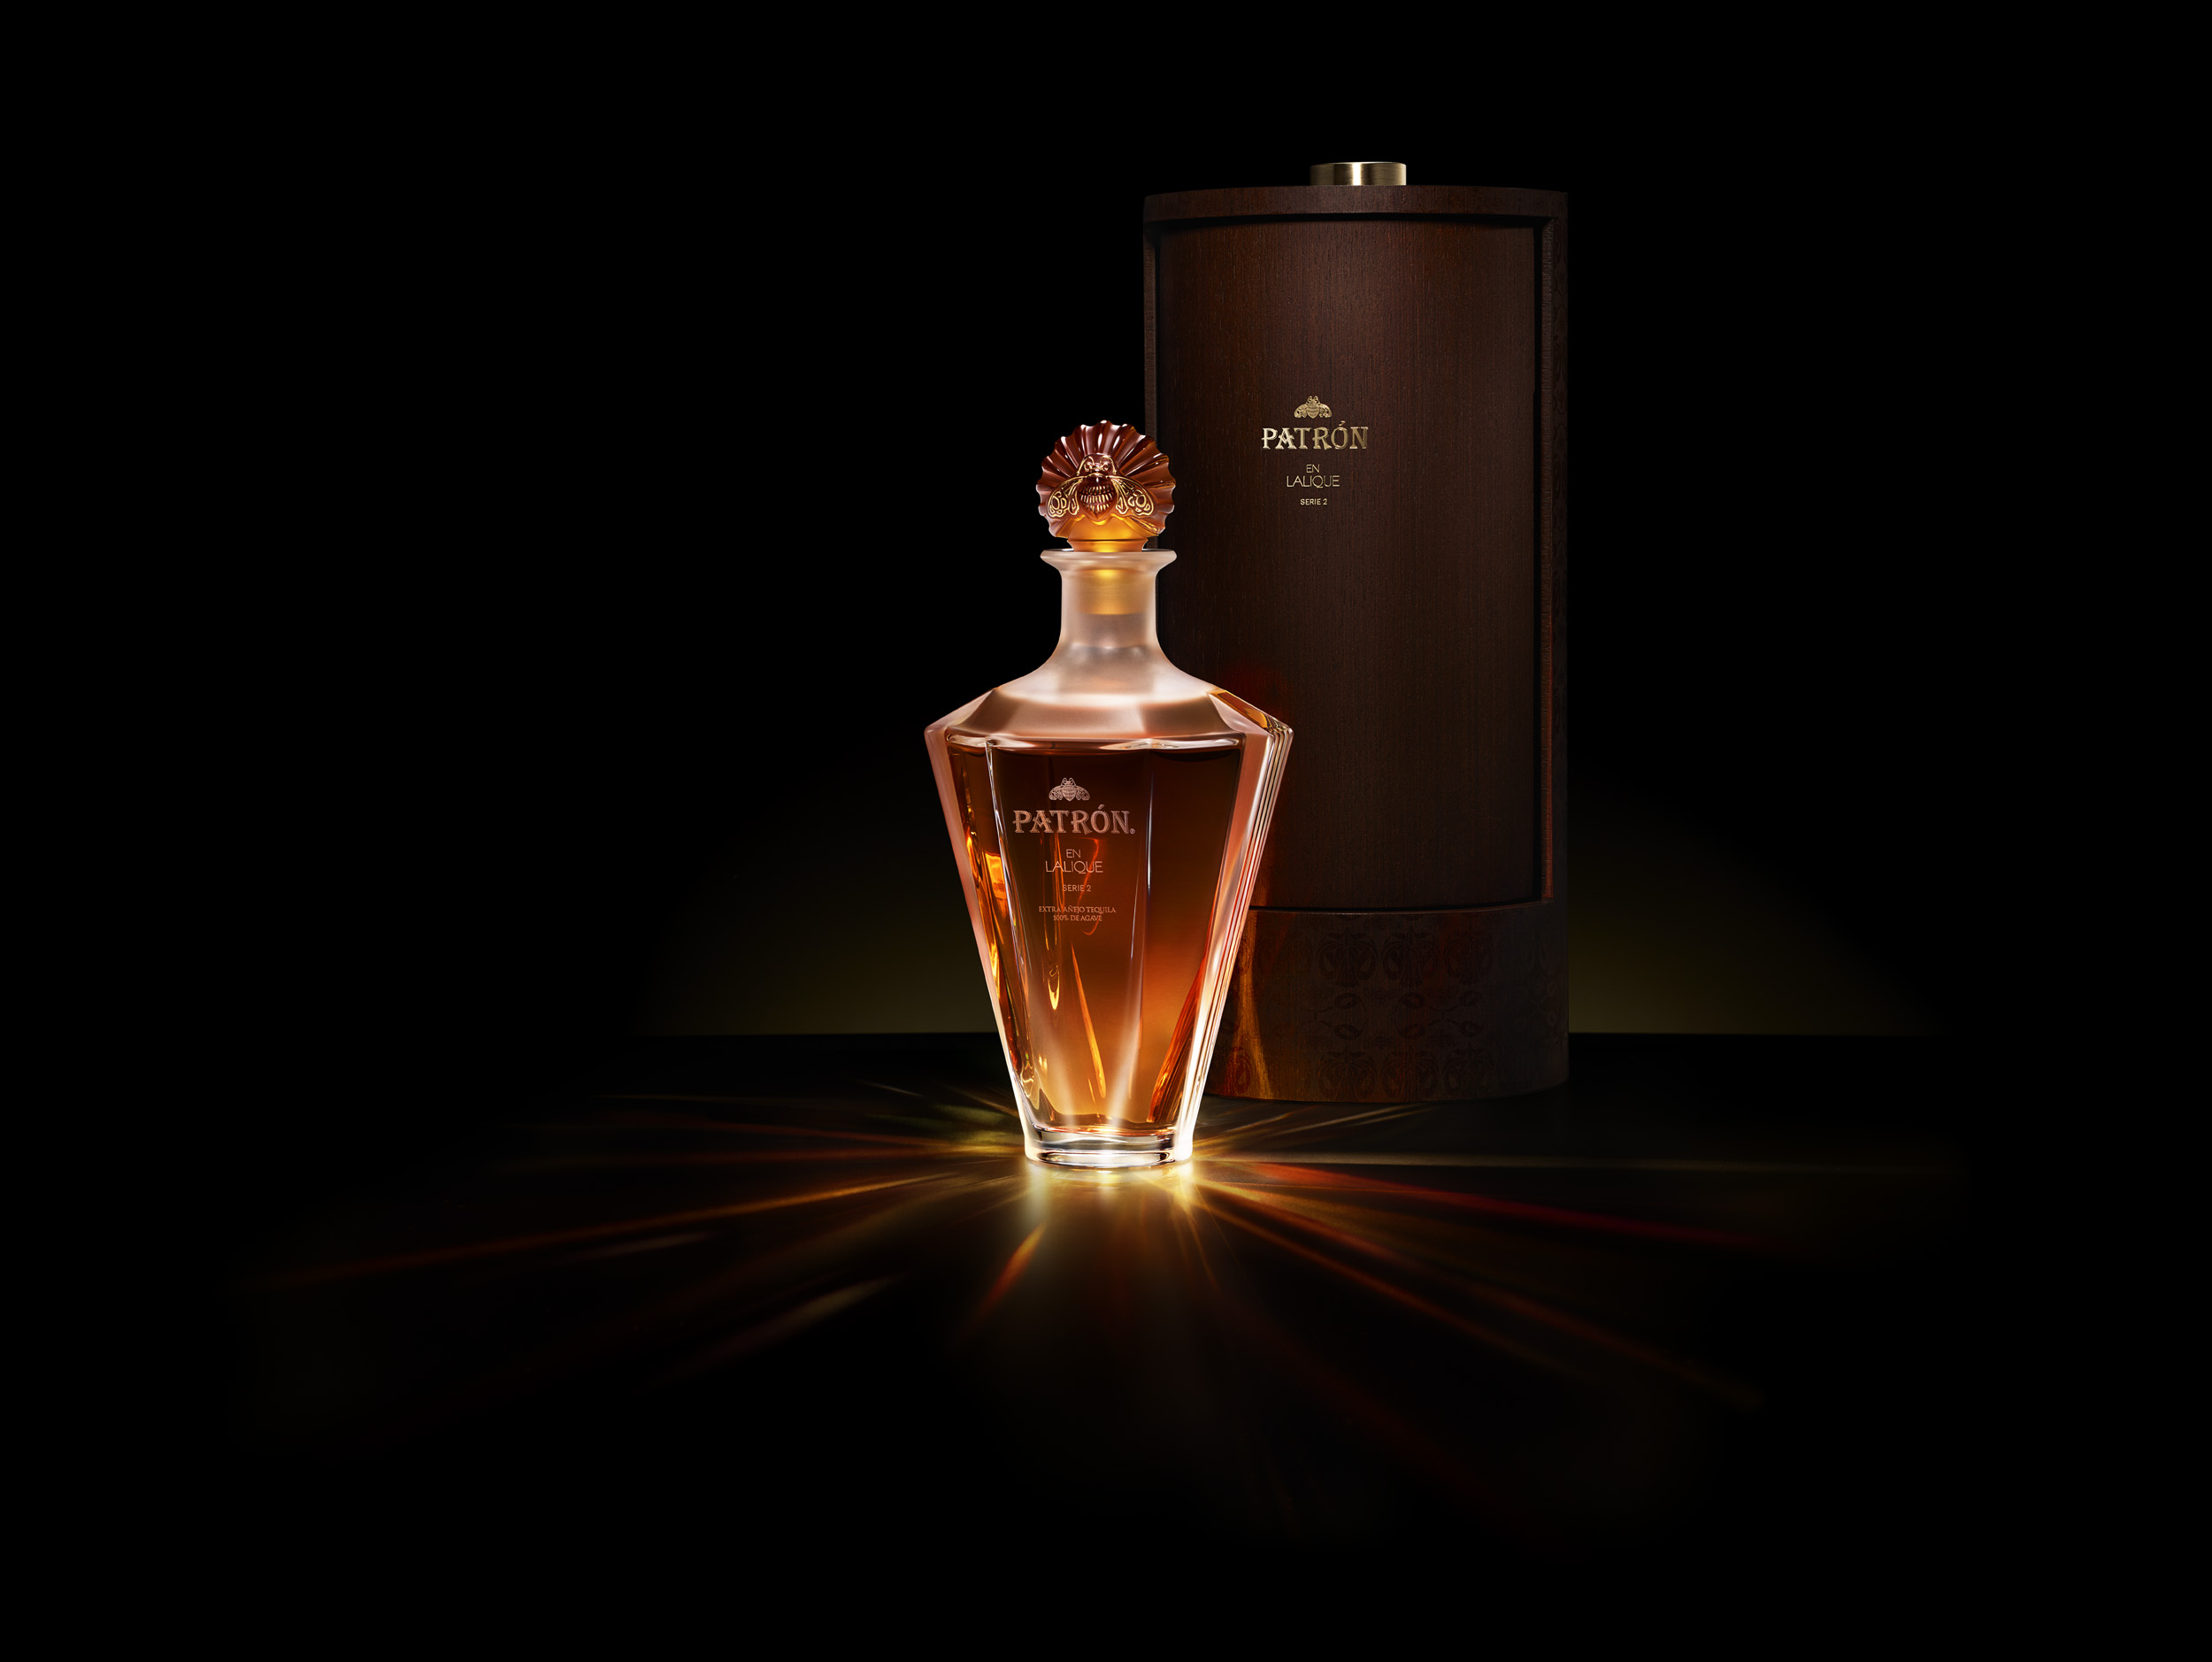 """Patron Lalique Brochure Photography Shoot; PRN1-TEQ-17-00126; Lalique; Bottle and Box; 5/9/17; Kenji Toma; Yoni Ben-Yosef, yoni@cartelandco.com; """"Quixote Studios - Studio 3 ; 1011 N. Fuller Ave. West Hollywood, CA 90046"""" Usage for 3 hero shots including all outtakes and any variations the unlimited exclusive rights for all media (excluding broadcast), worldwide, in perpetuity, for Patron Spirits Co. and its subsidiaries. Art Usage Expiration - N/A; MullenLowe; Lauren Malizia; Cartel & Co"""